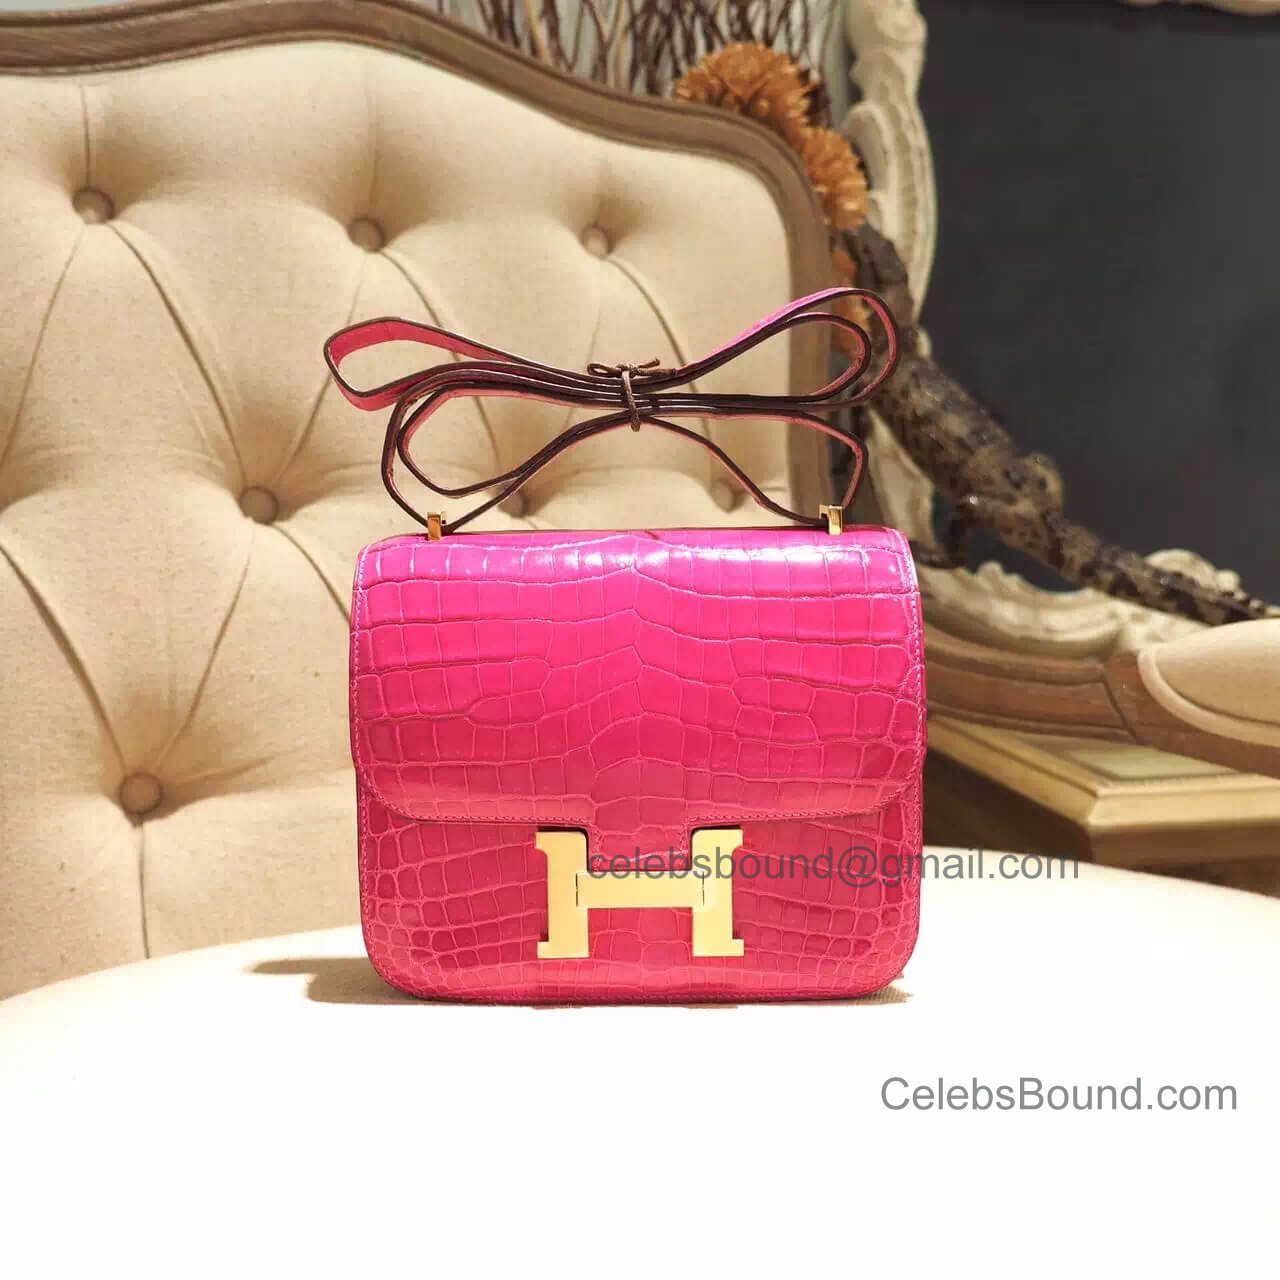 Replica Hermes Mini Constance 18 Bag in 5j Fuschia Pink Shiny Nile Croc GHW